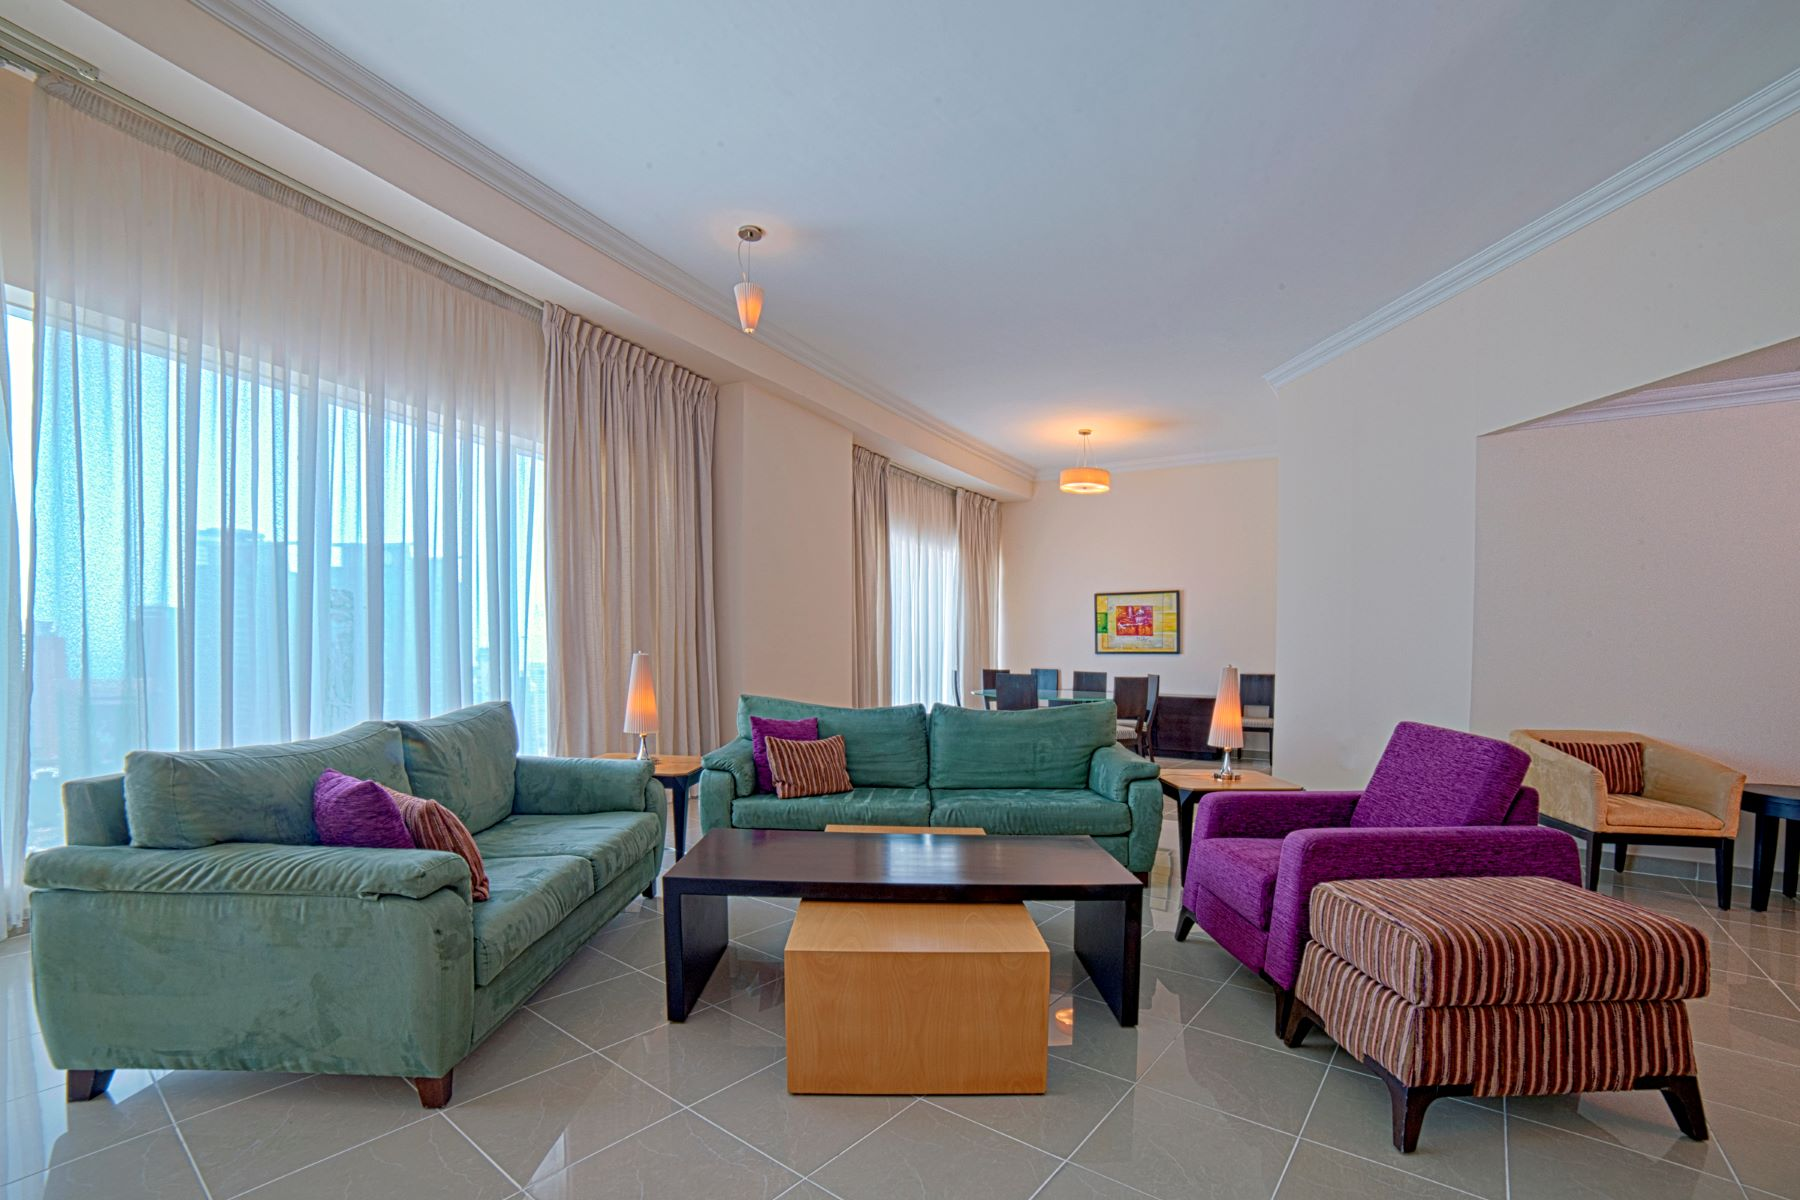 2 Bed Apartment Fully Furnished West Bay Doha, Al Dawha Katar